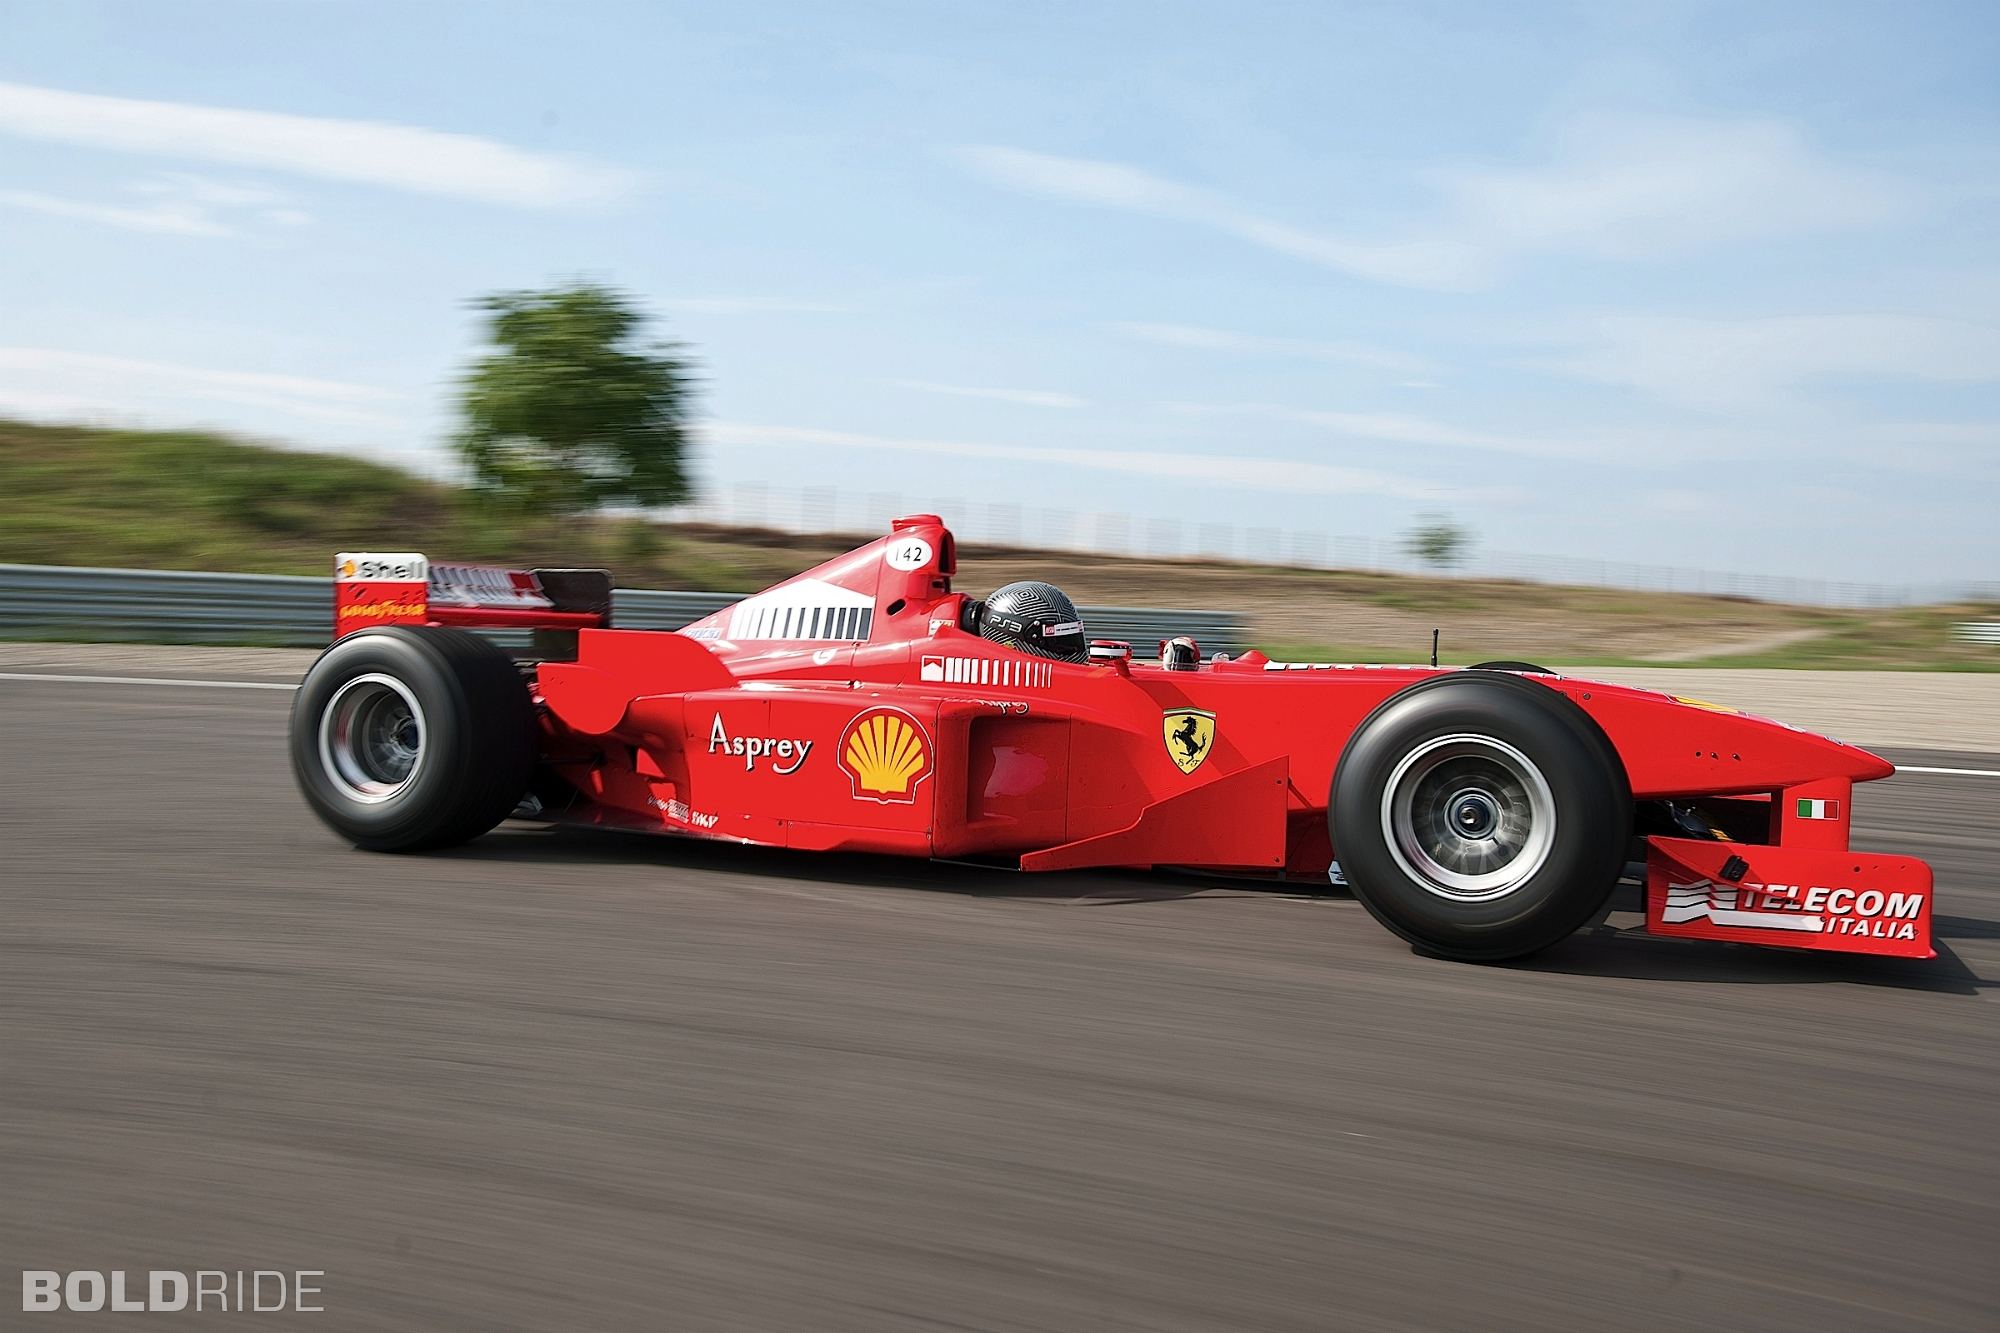 1998 Ferrari F300 Formula 1 Racing Car 2000 x 1333